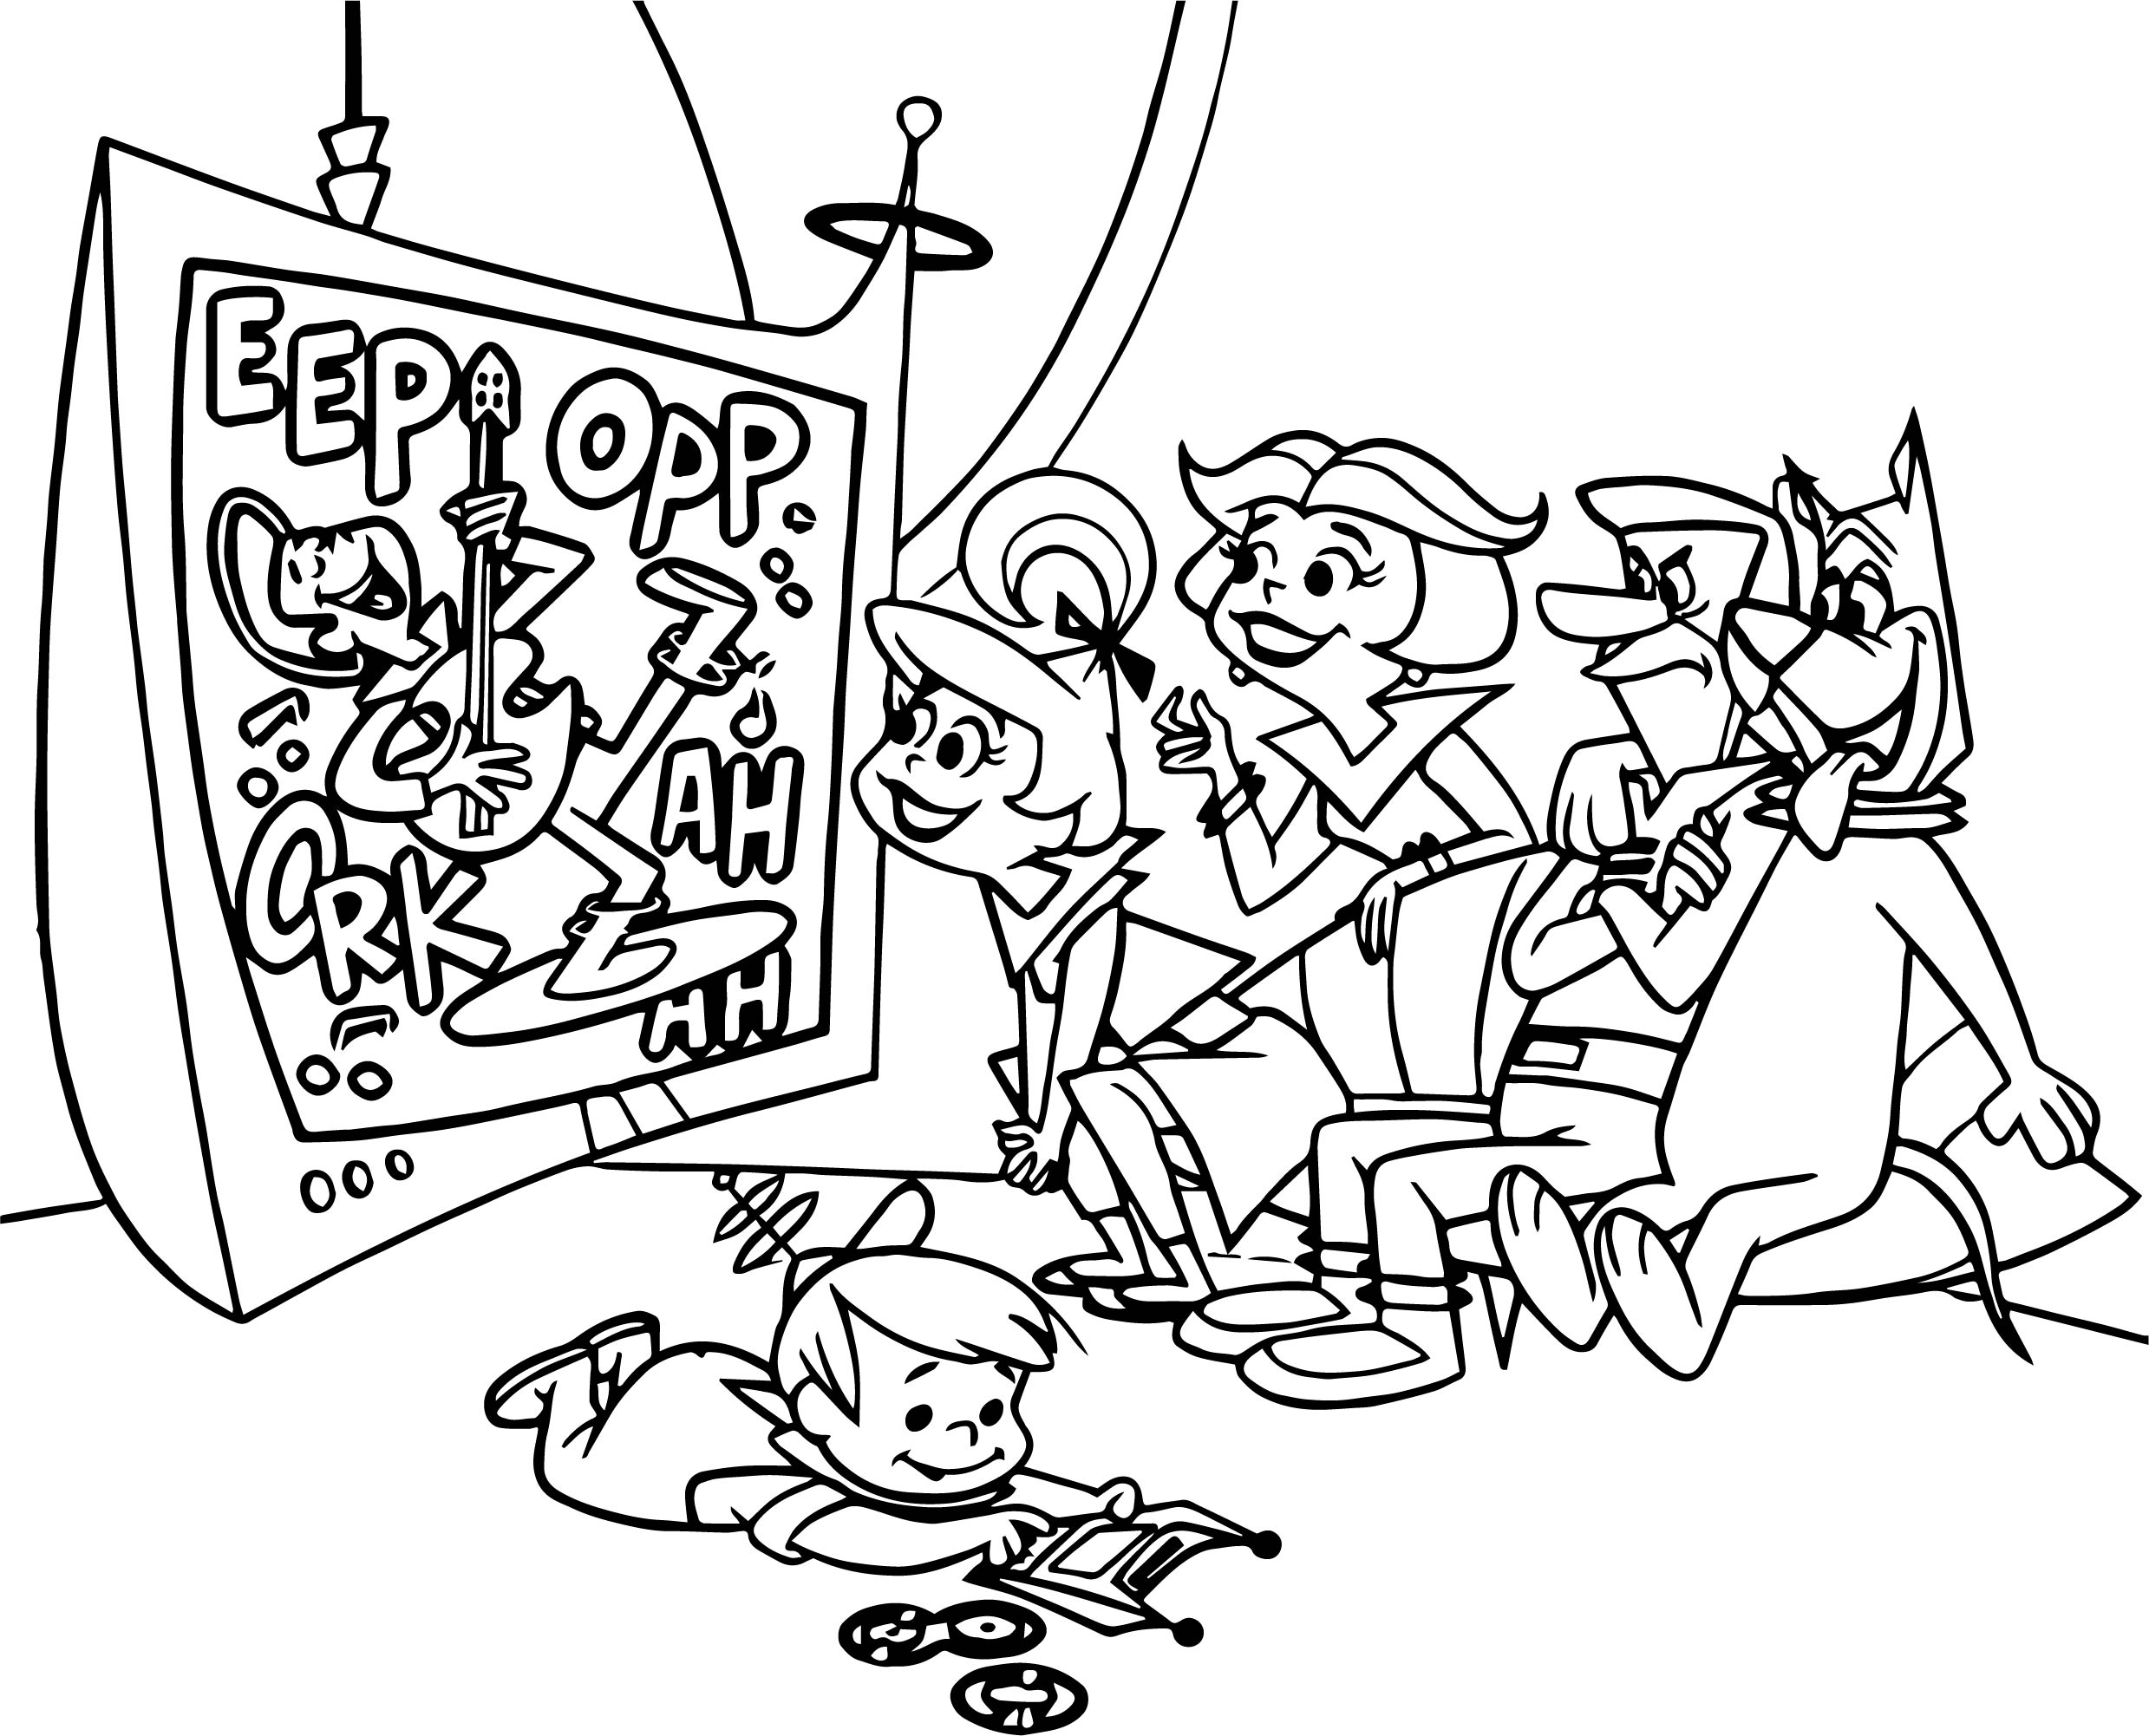 Eep Opp Post Jetson Family Coloring Page